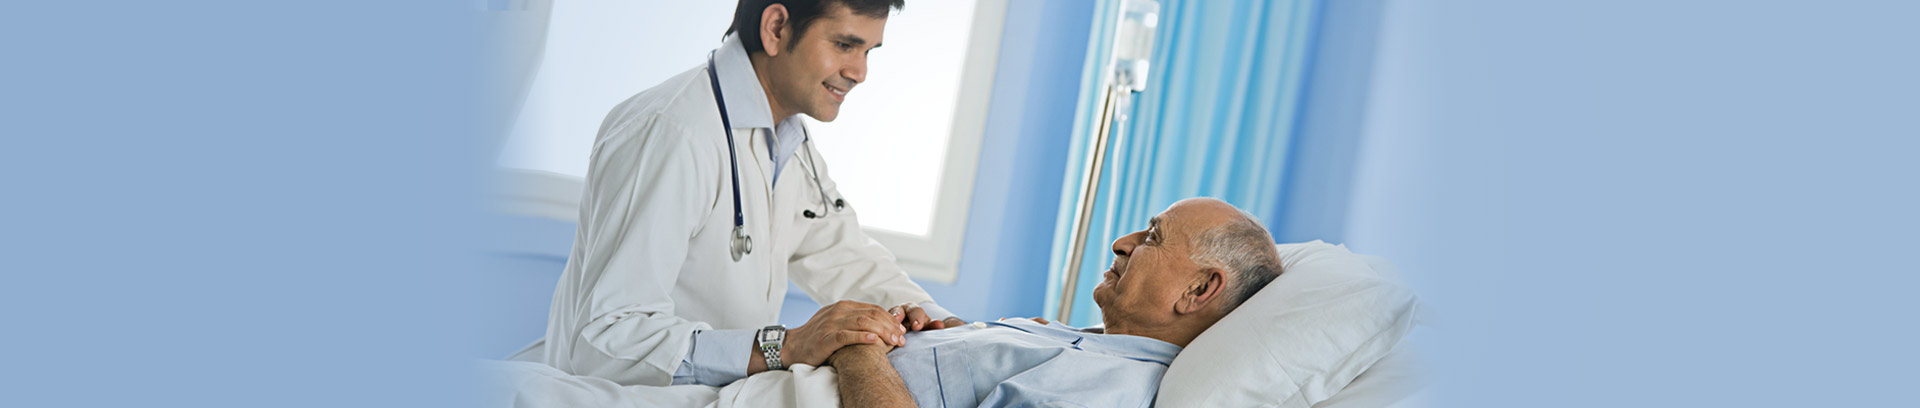 Doctor examines cancer patient to give moral support for recovery